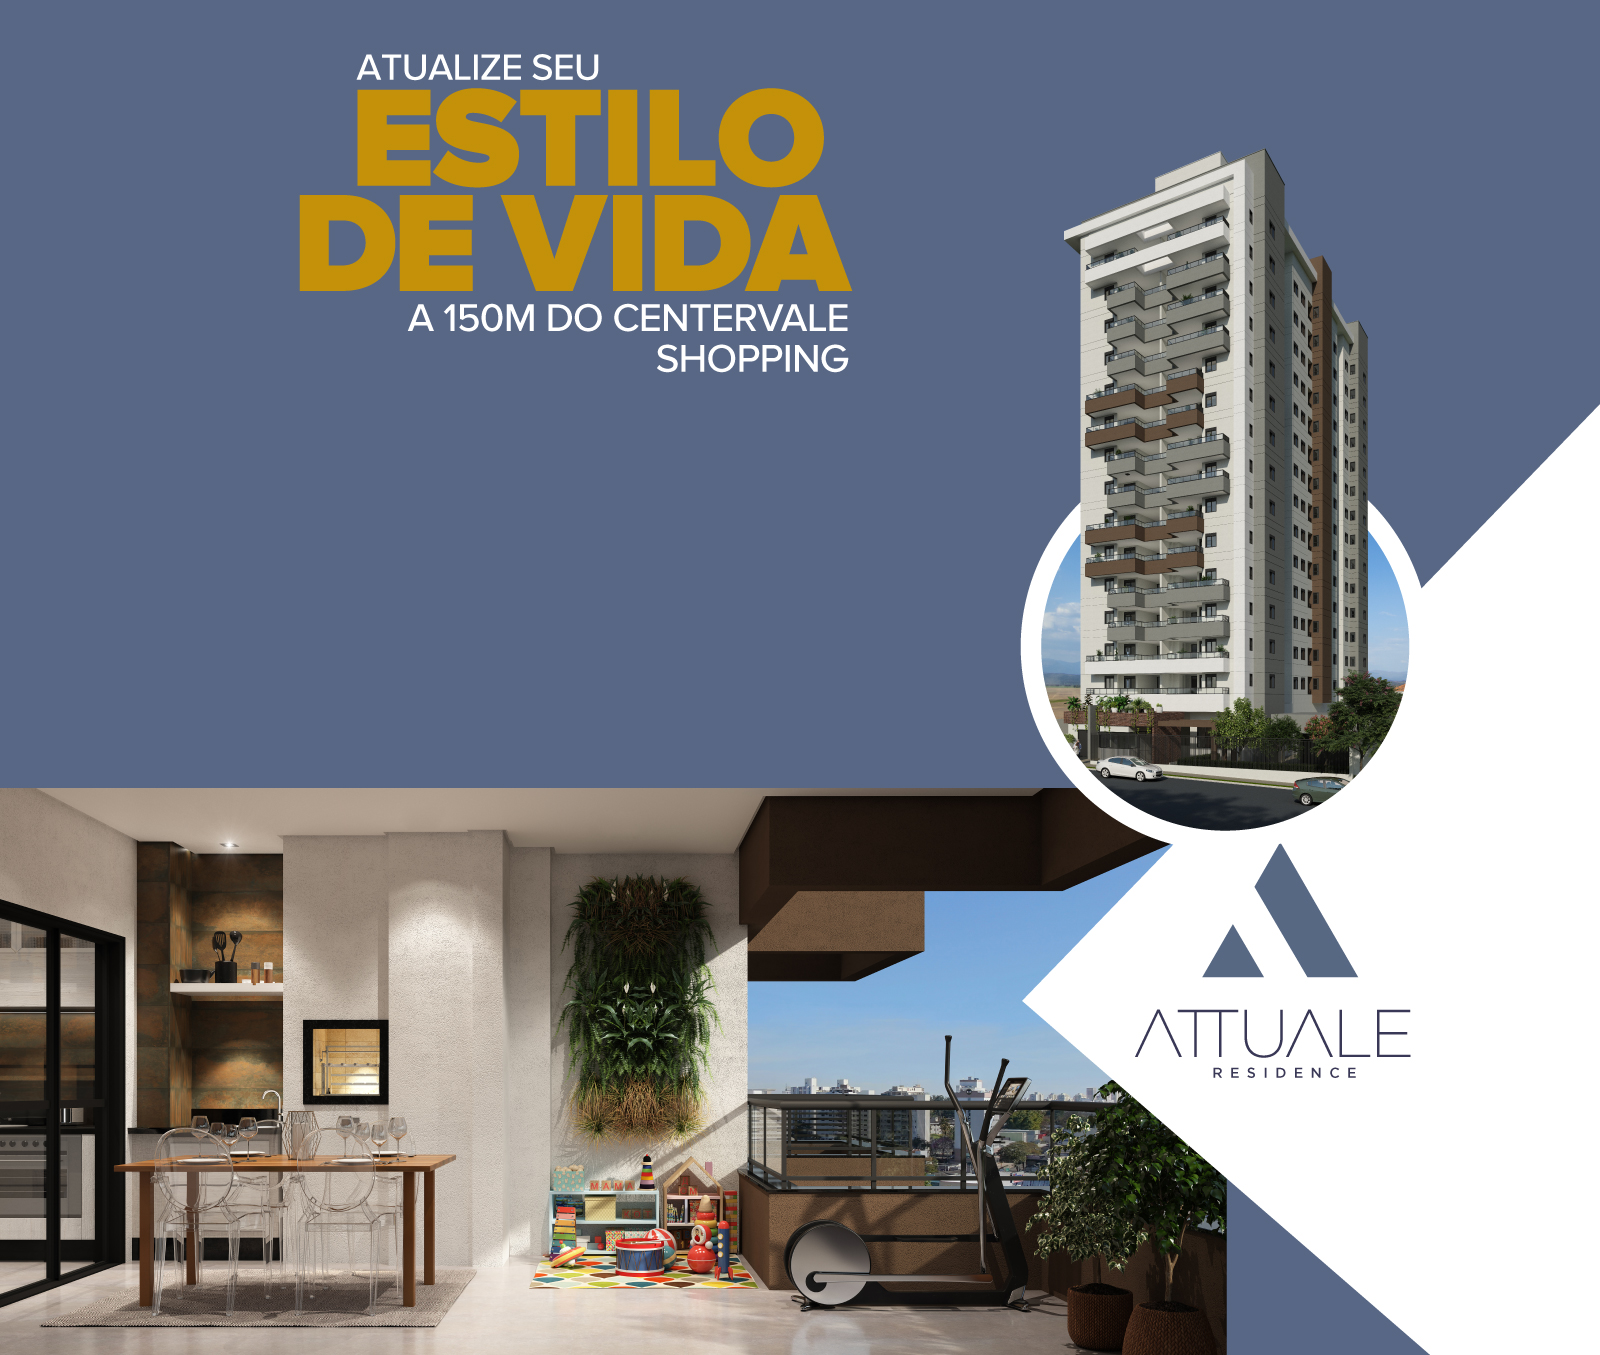 ATTUALE RESIDENCE